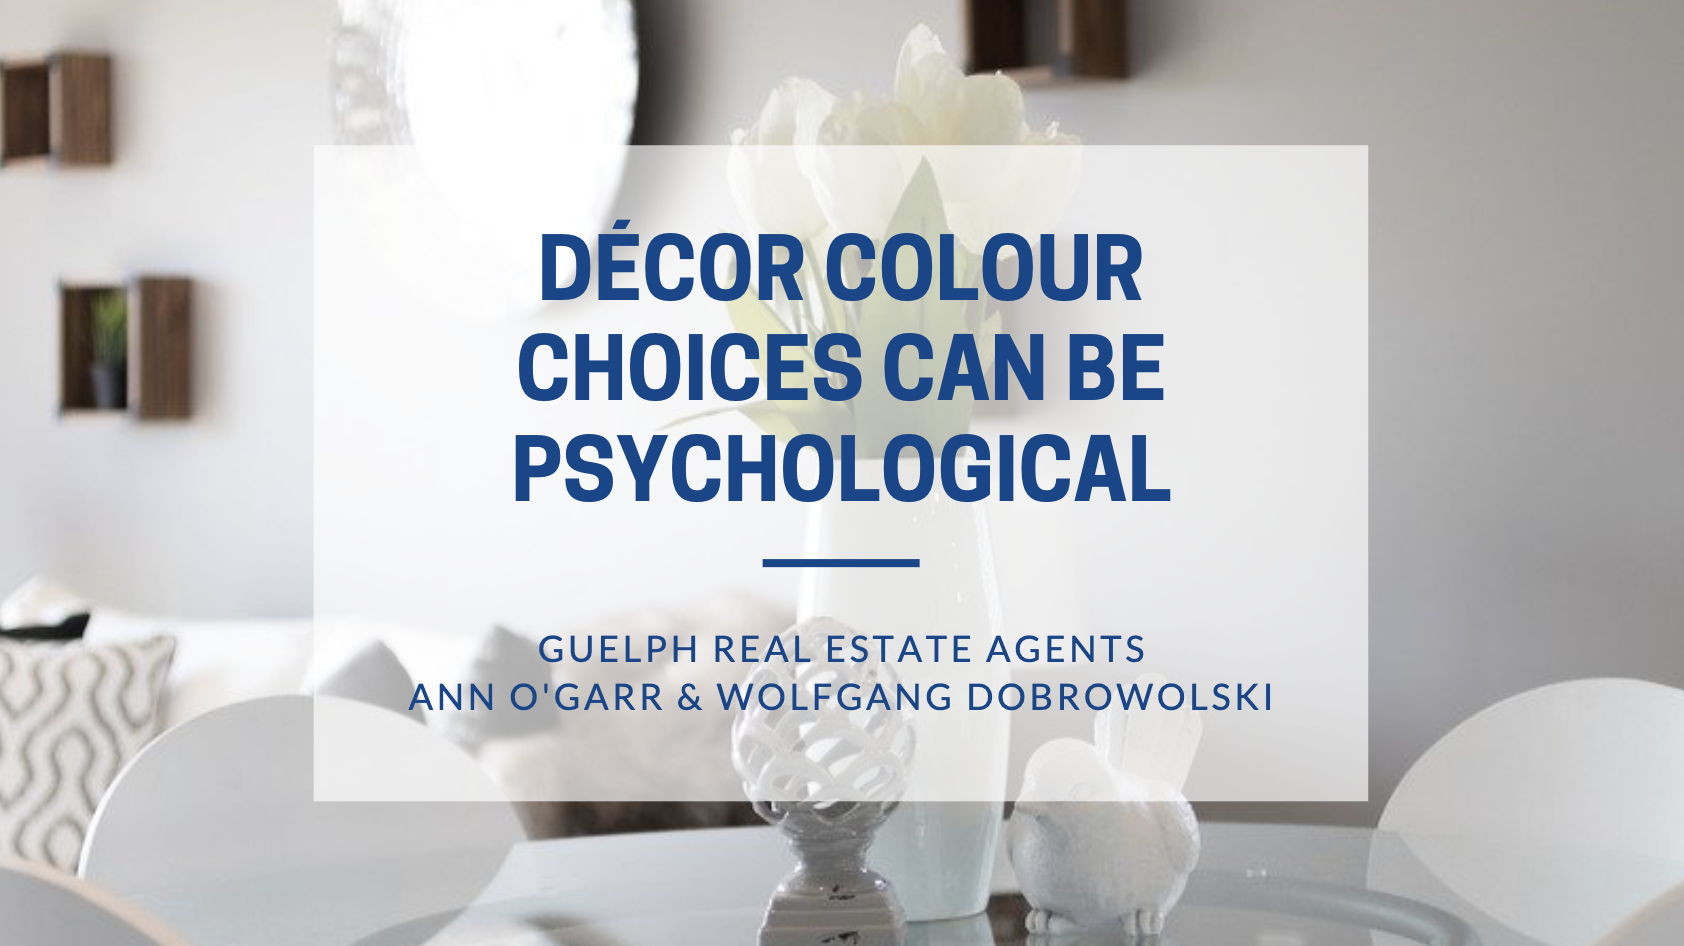 Guelph Realtors - Décor Colour Choices Can Be Psychological